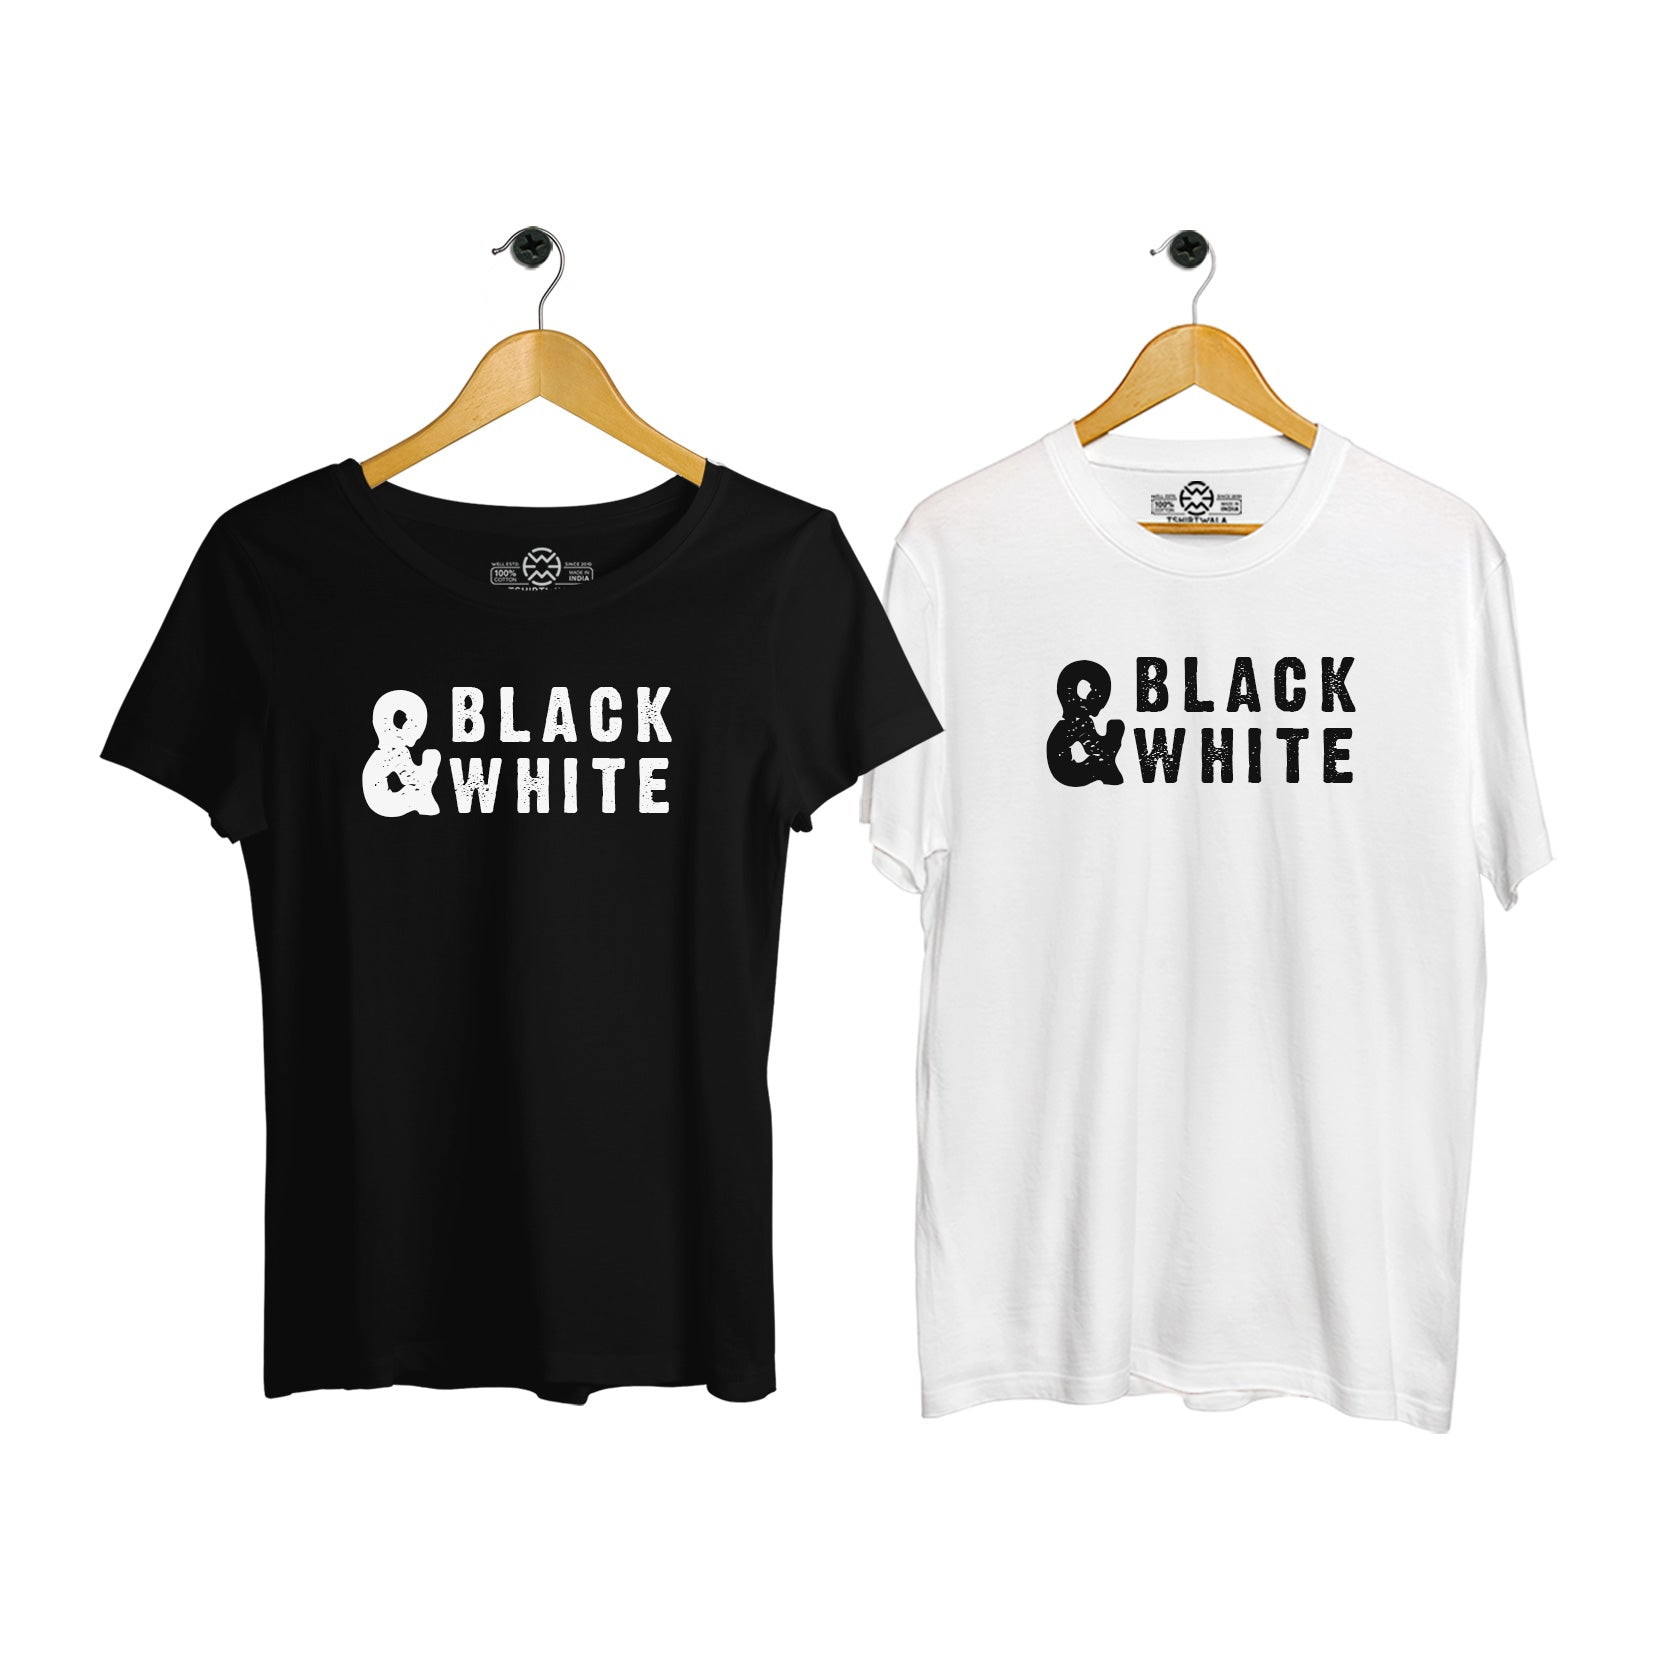 Black & White Couple T-shirt